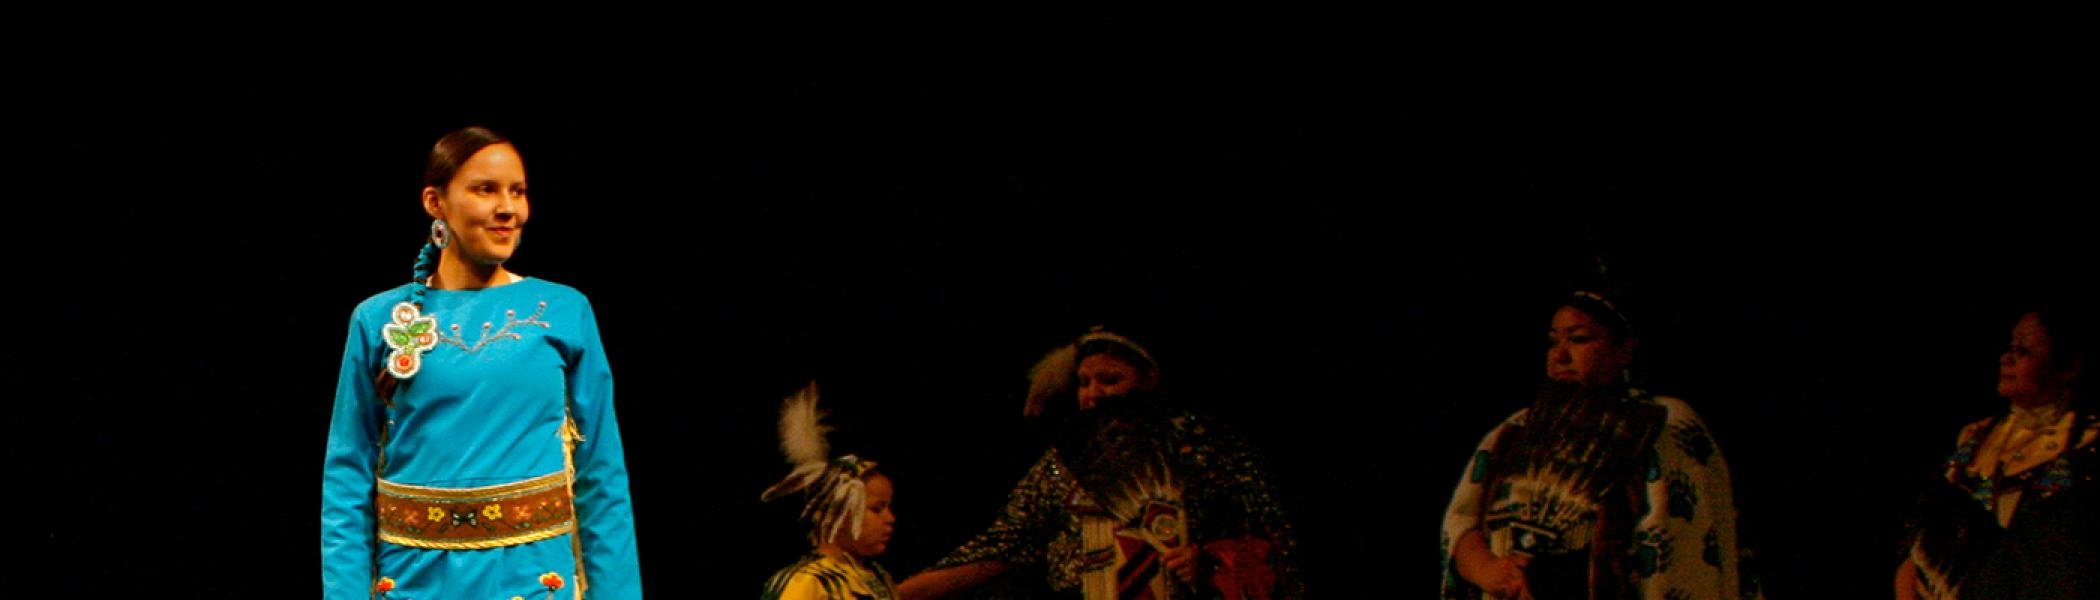 A student in the Performance Space in regalia performing a dance